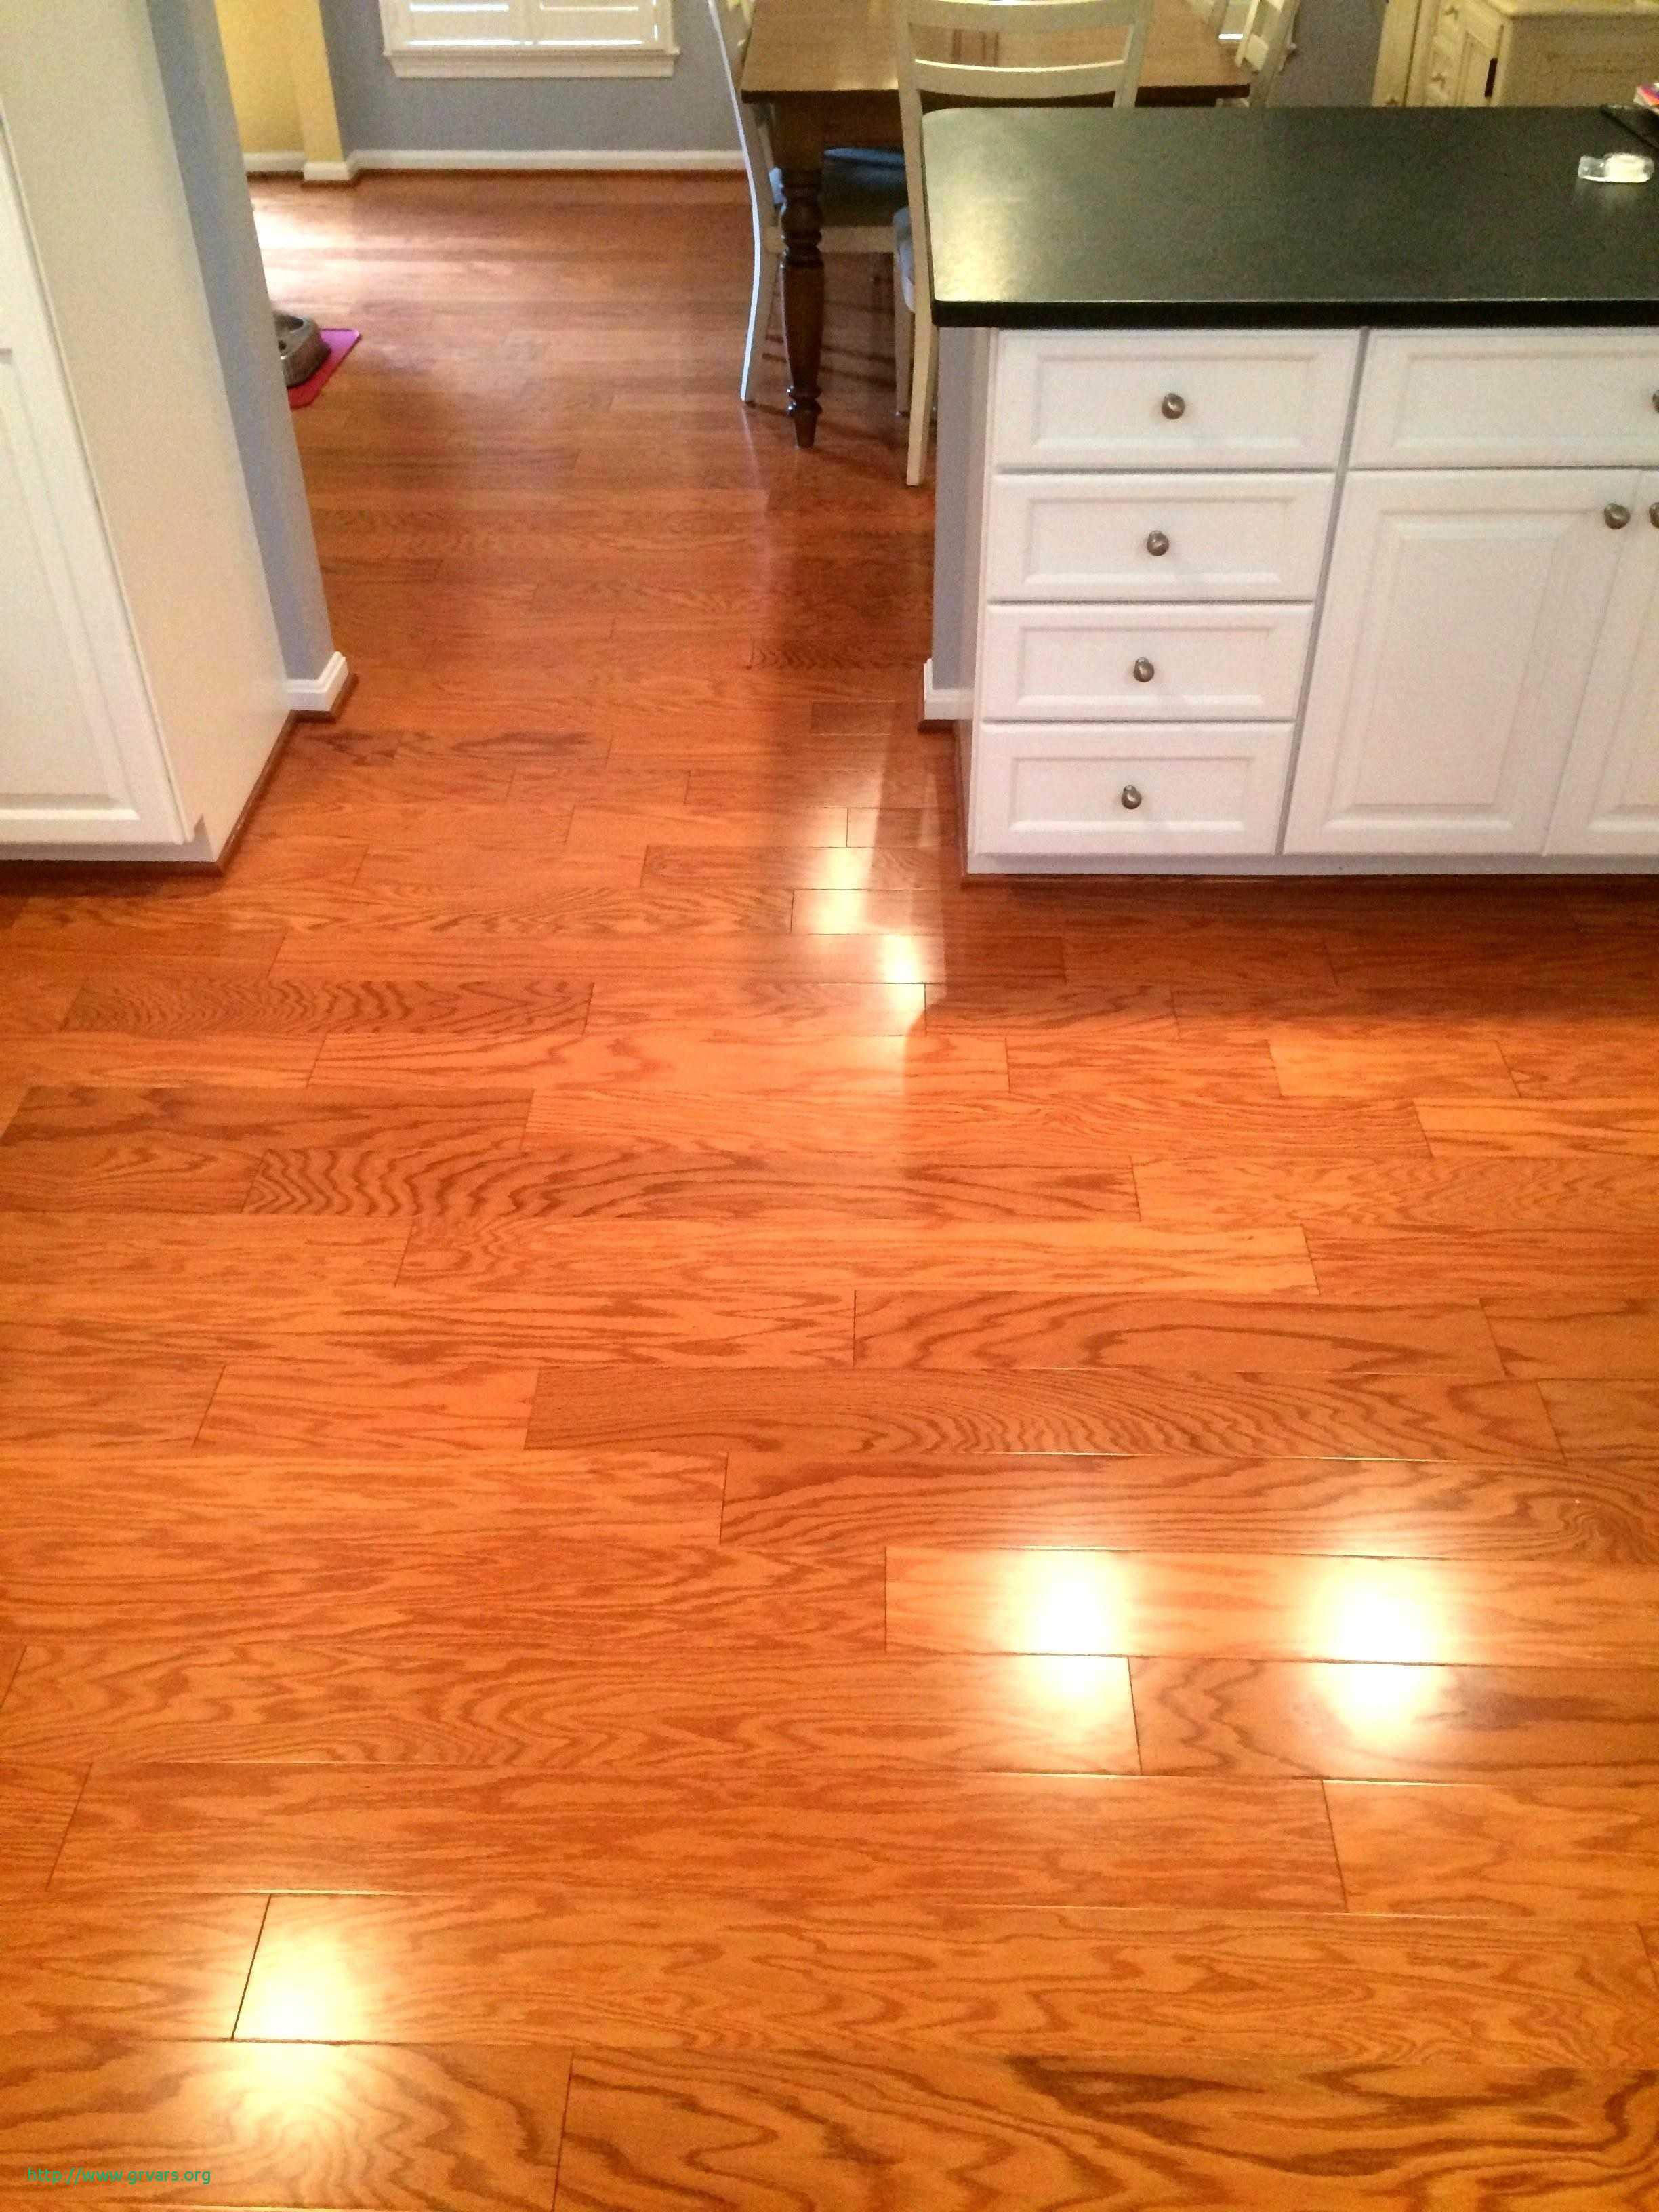 matte finish hardwood floors of 22 nouveau how to get stains out of wood floors ideas blog with how to get stains out of wood floors meilleur de provenza floors matte is the new